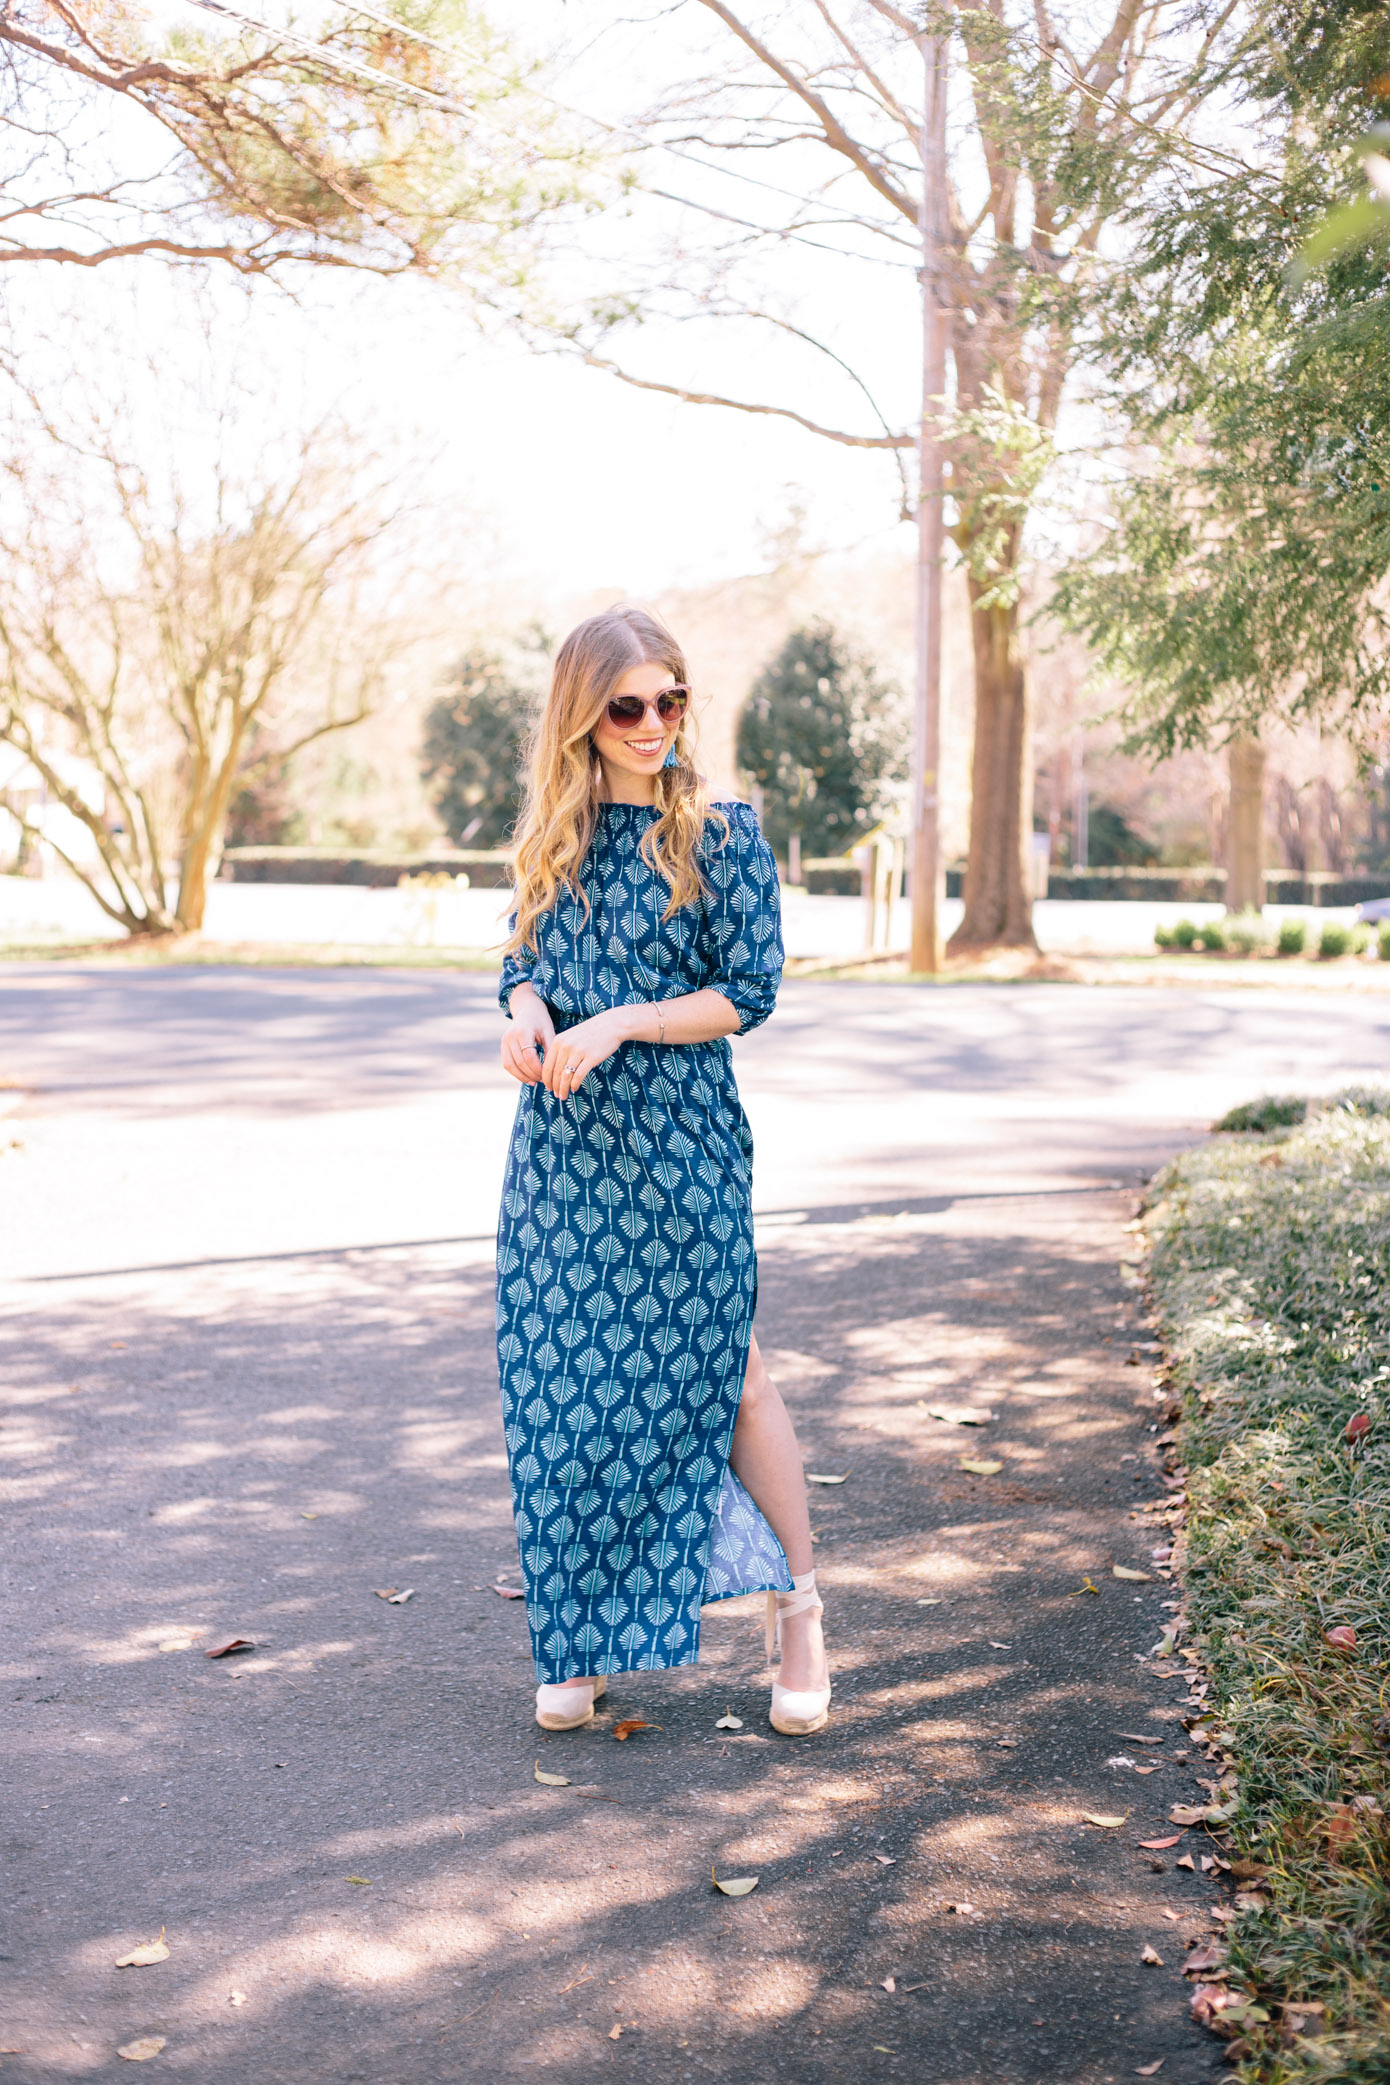 Blue Maxi Dress for Spring Break | Louella Reese Life & Style Blog